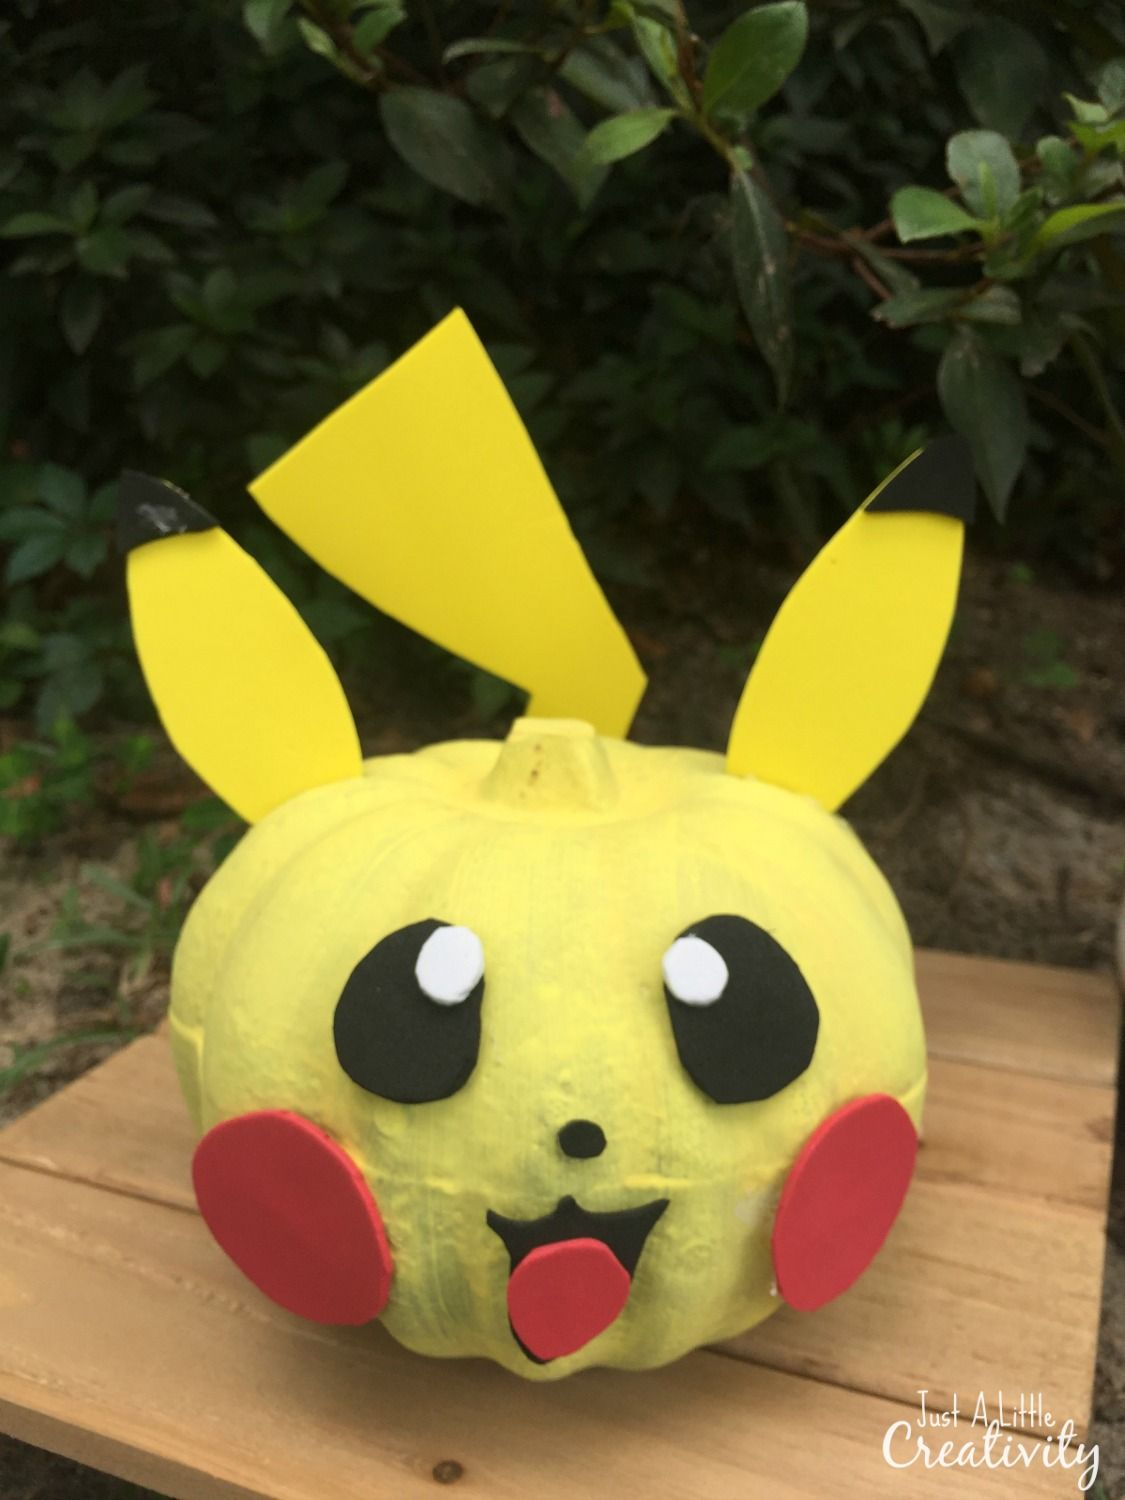 How to create your own pikachu pumpkin